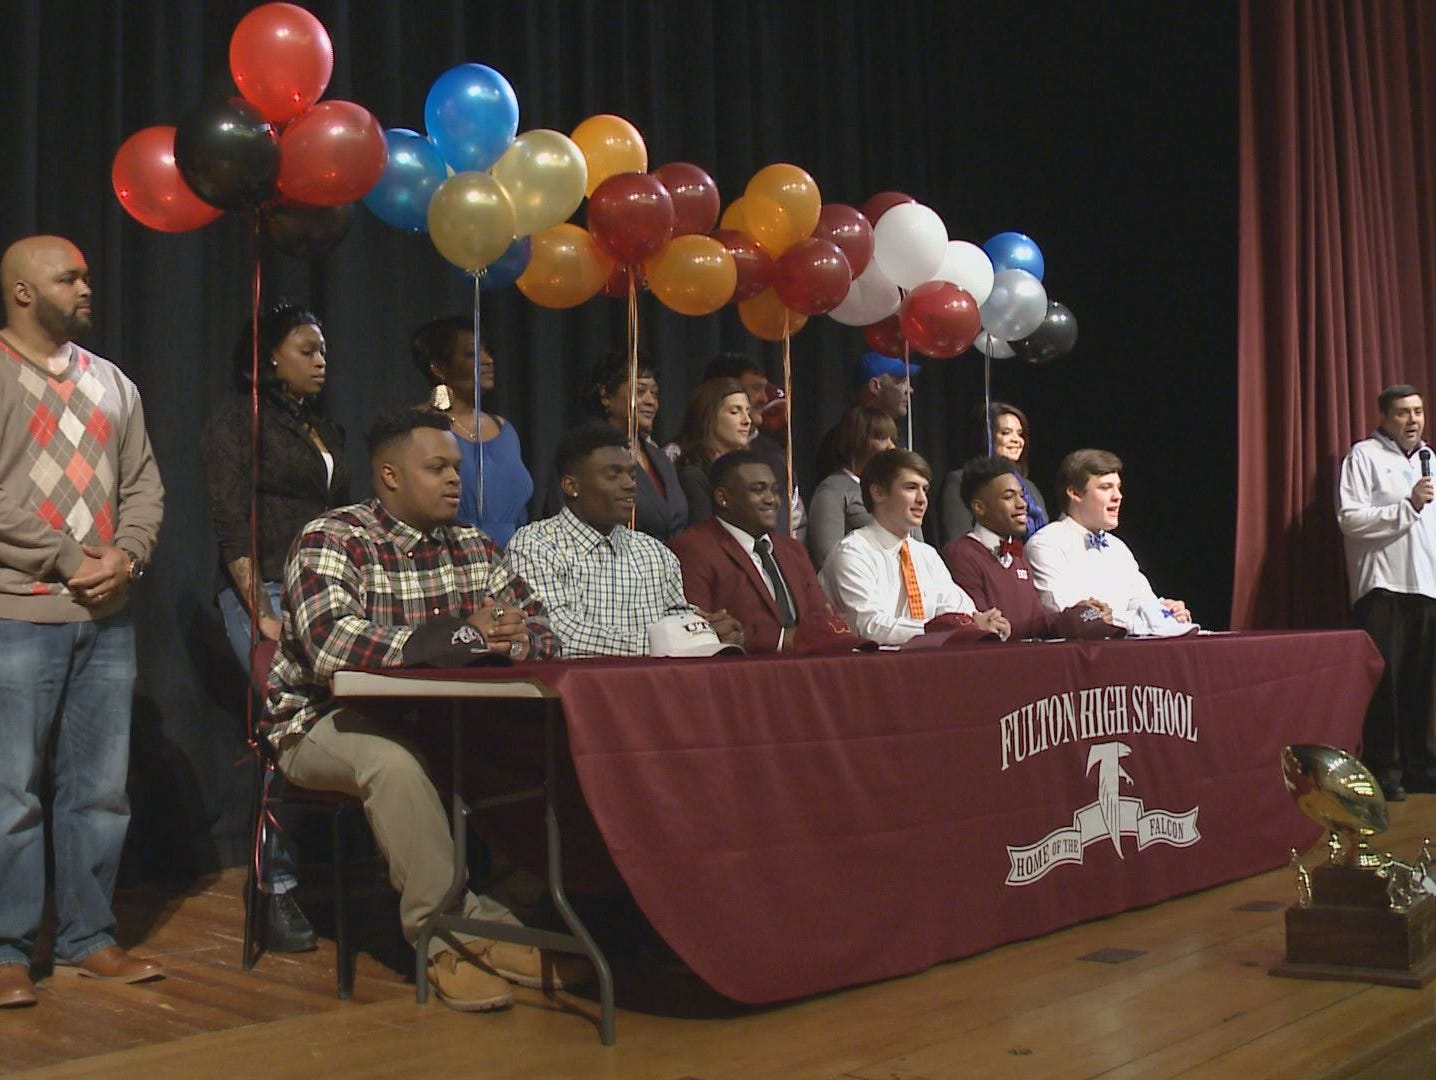 National Signing Day Celebration at Fulton High School